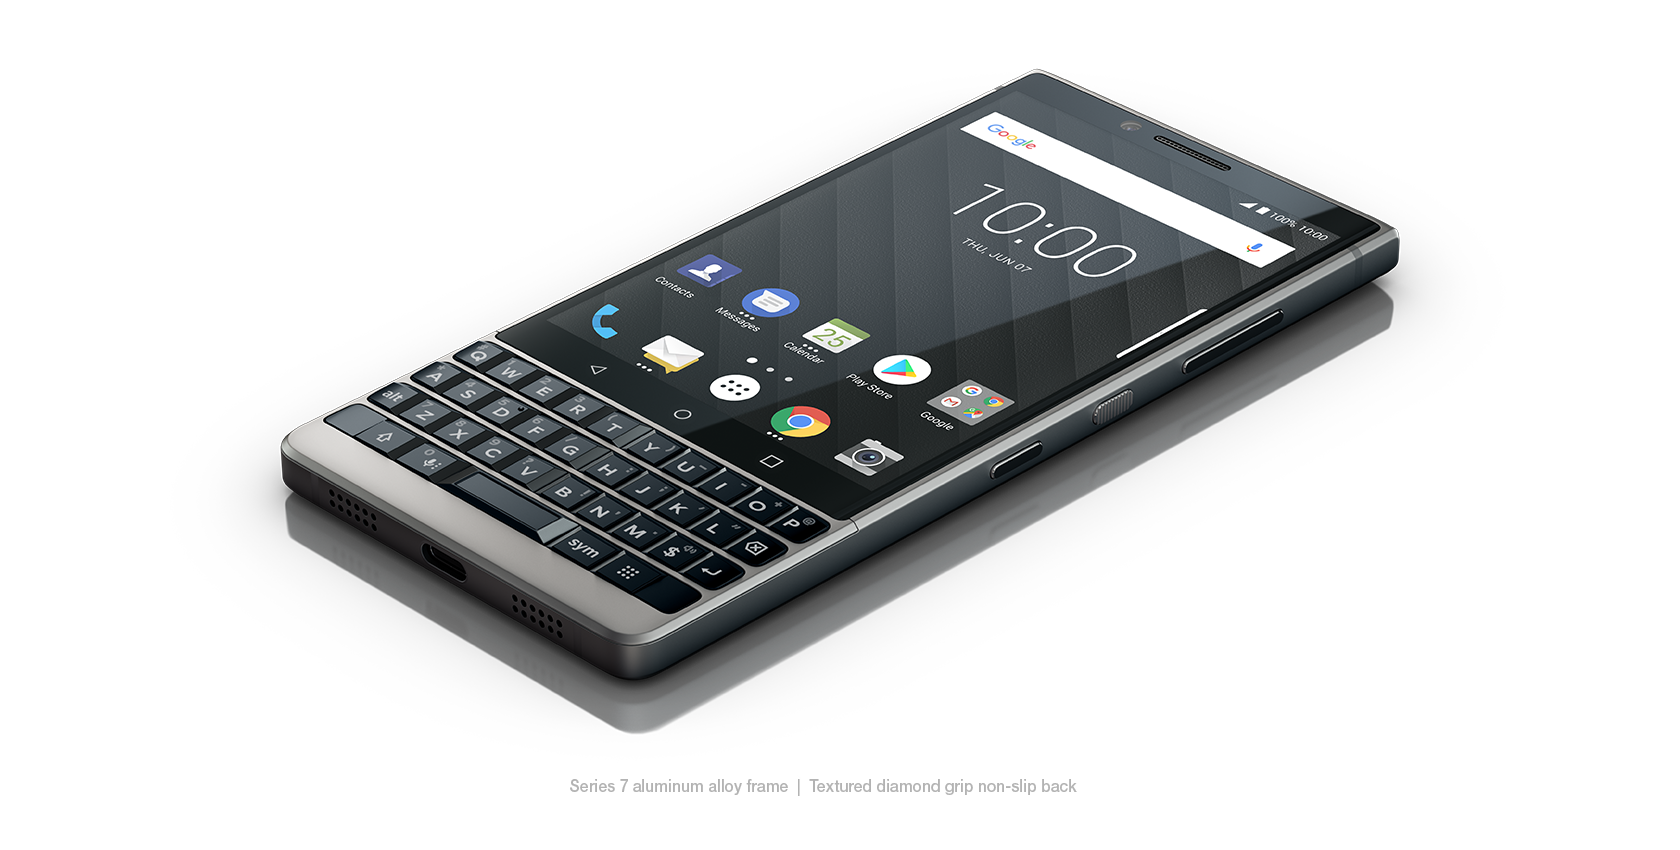 blackberry key2 front preview - BlackBerry KEY2